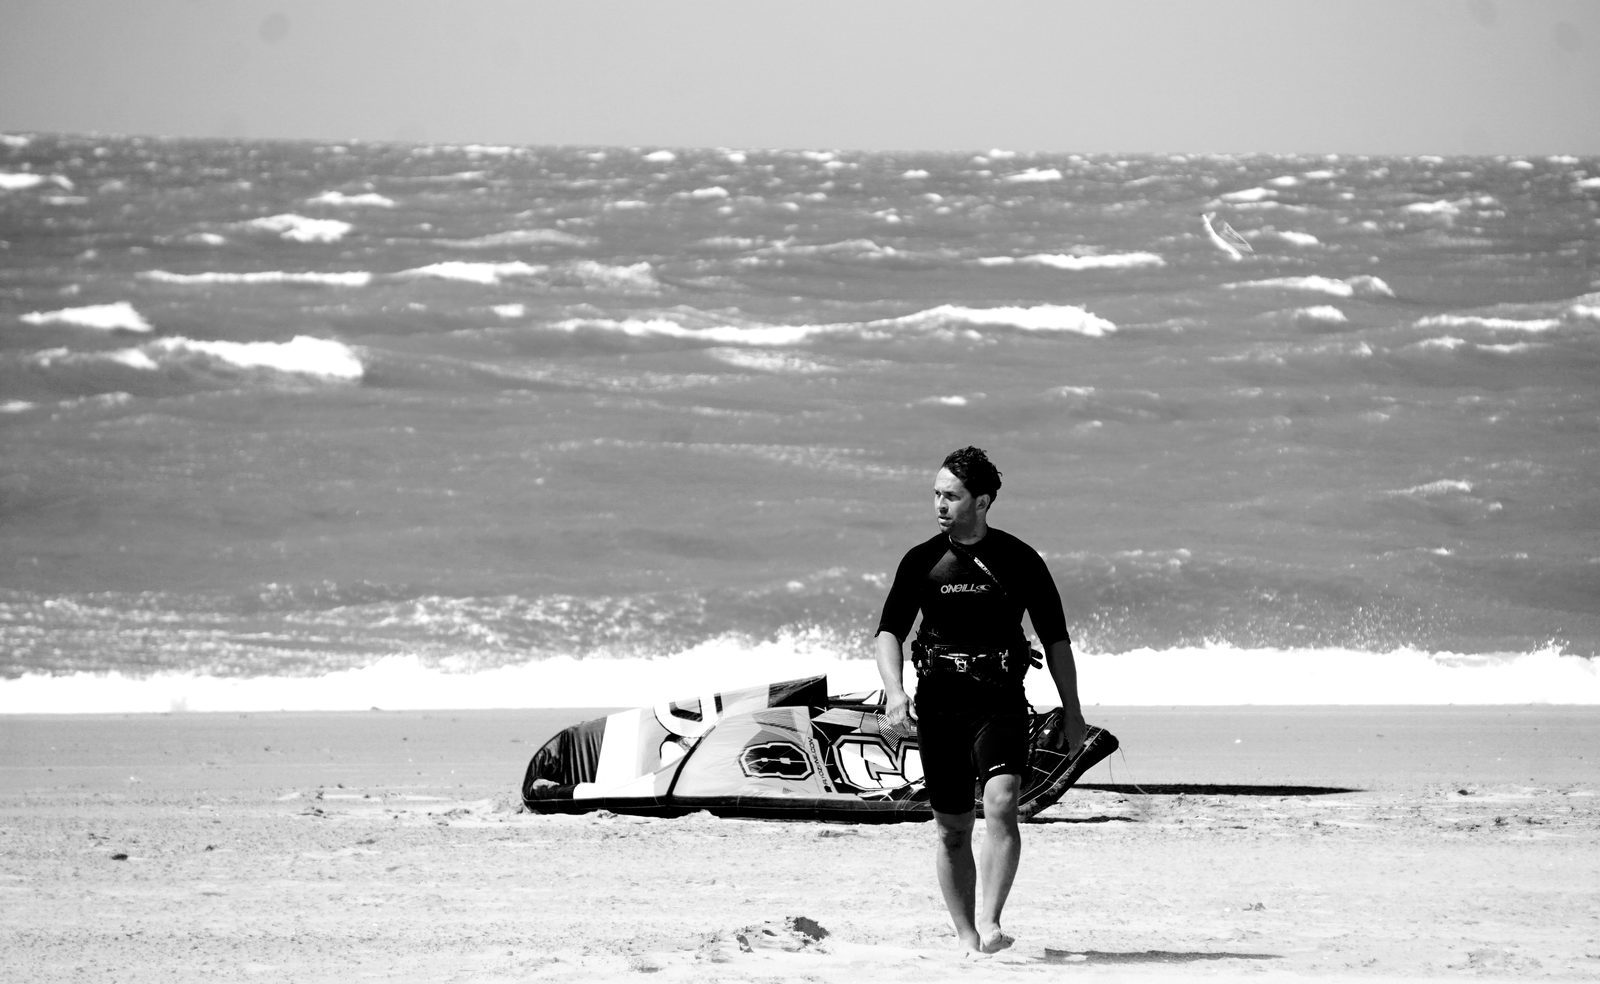 Watersport in Zeeland